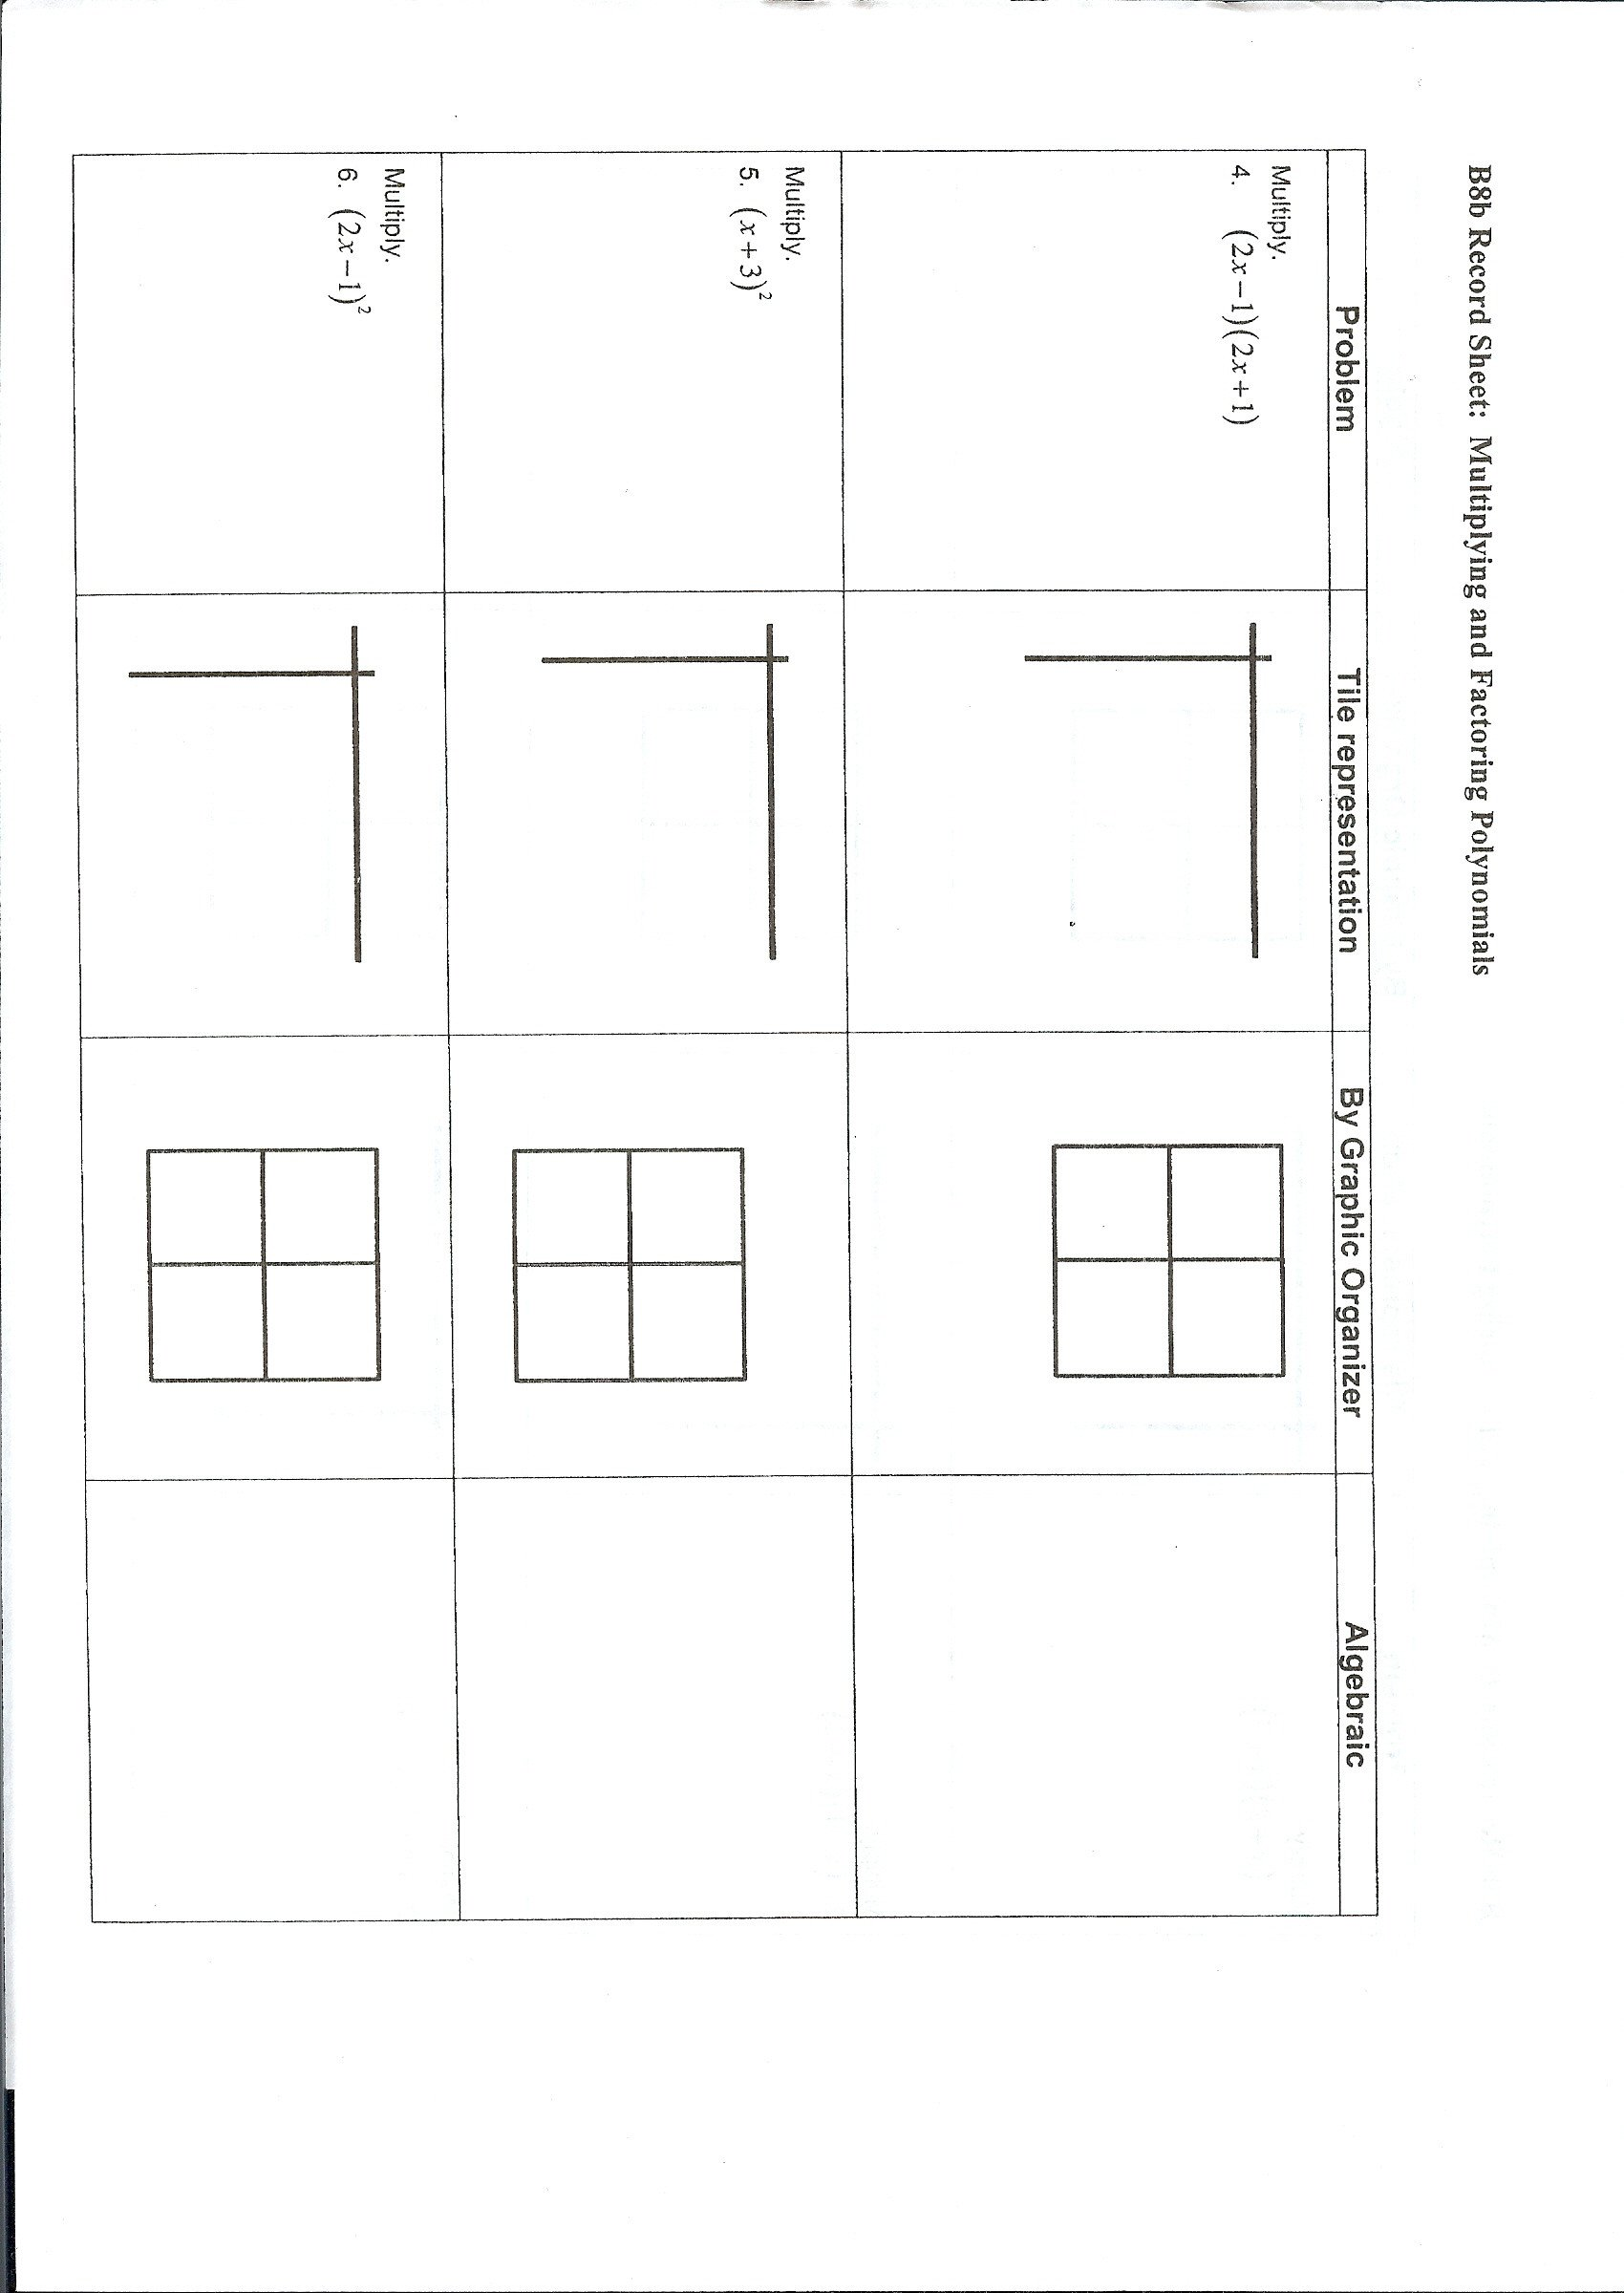 Algebra Tiles Worksheets 6th Grade Wisniewski Boyd Wel E